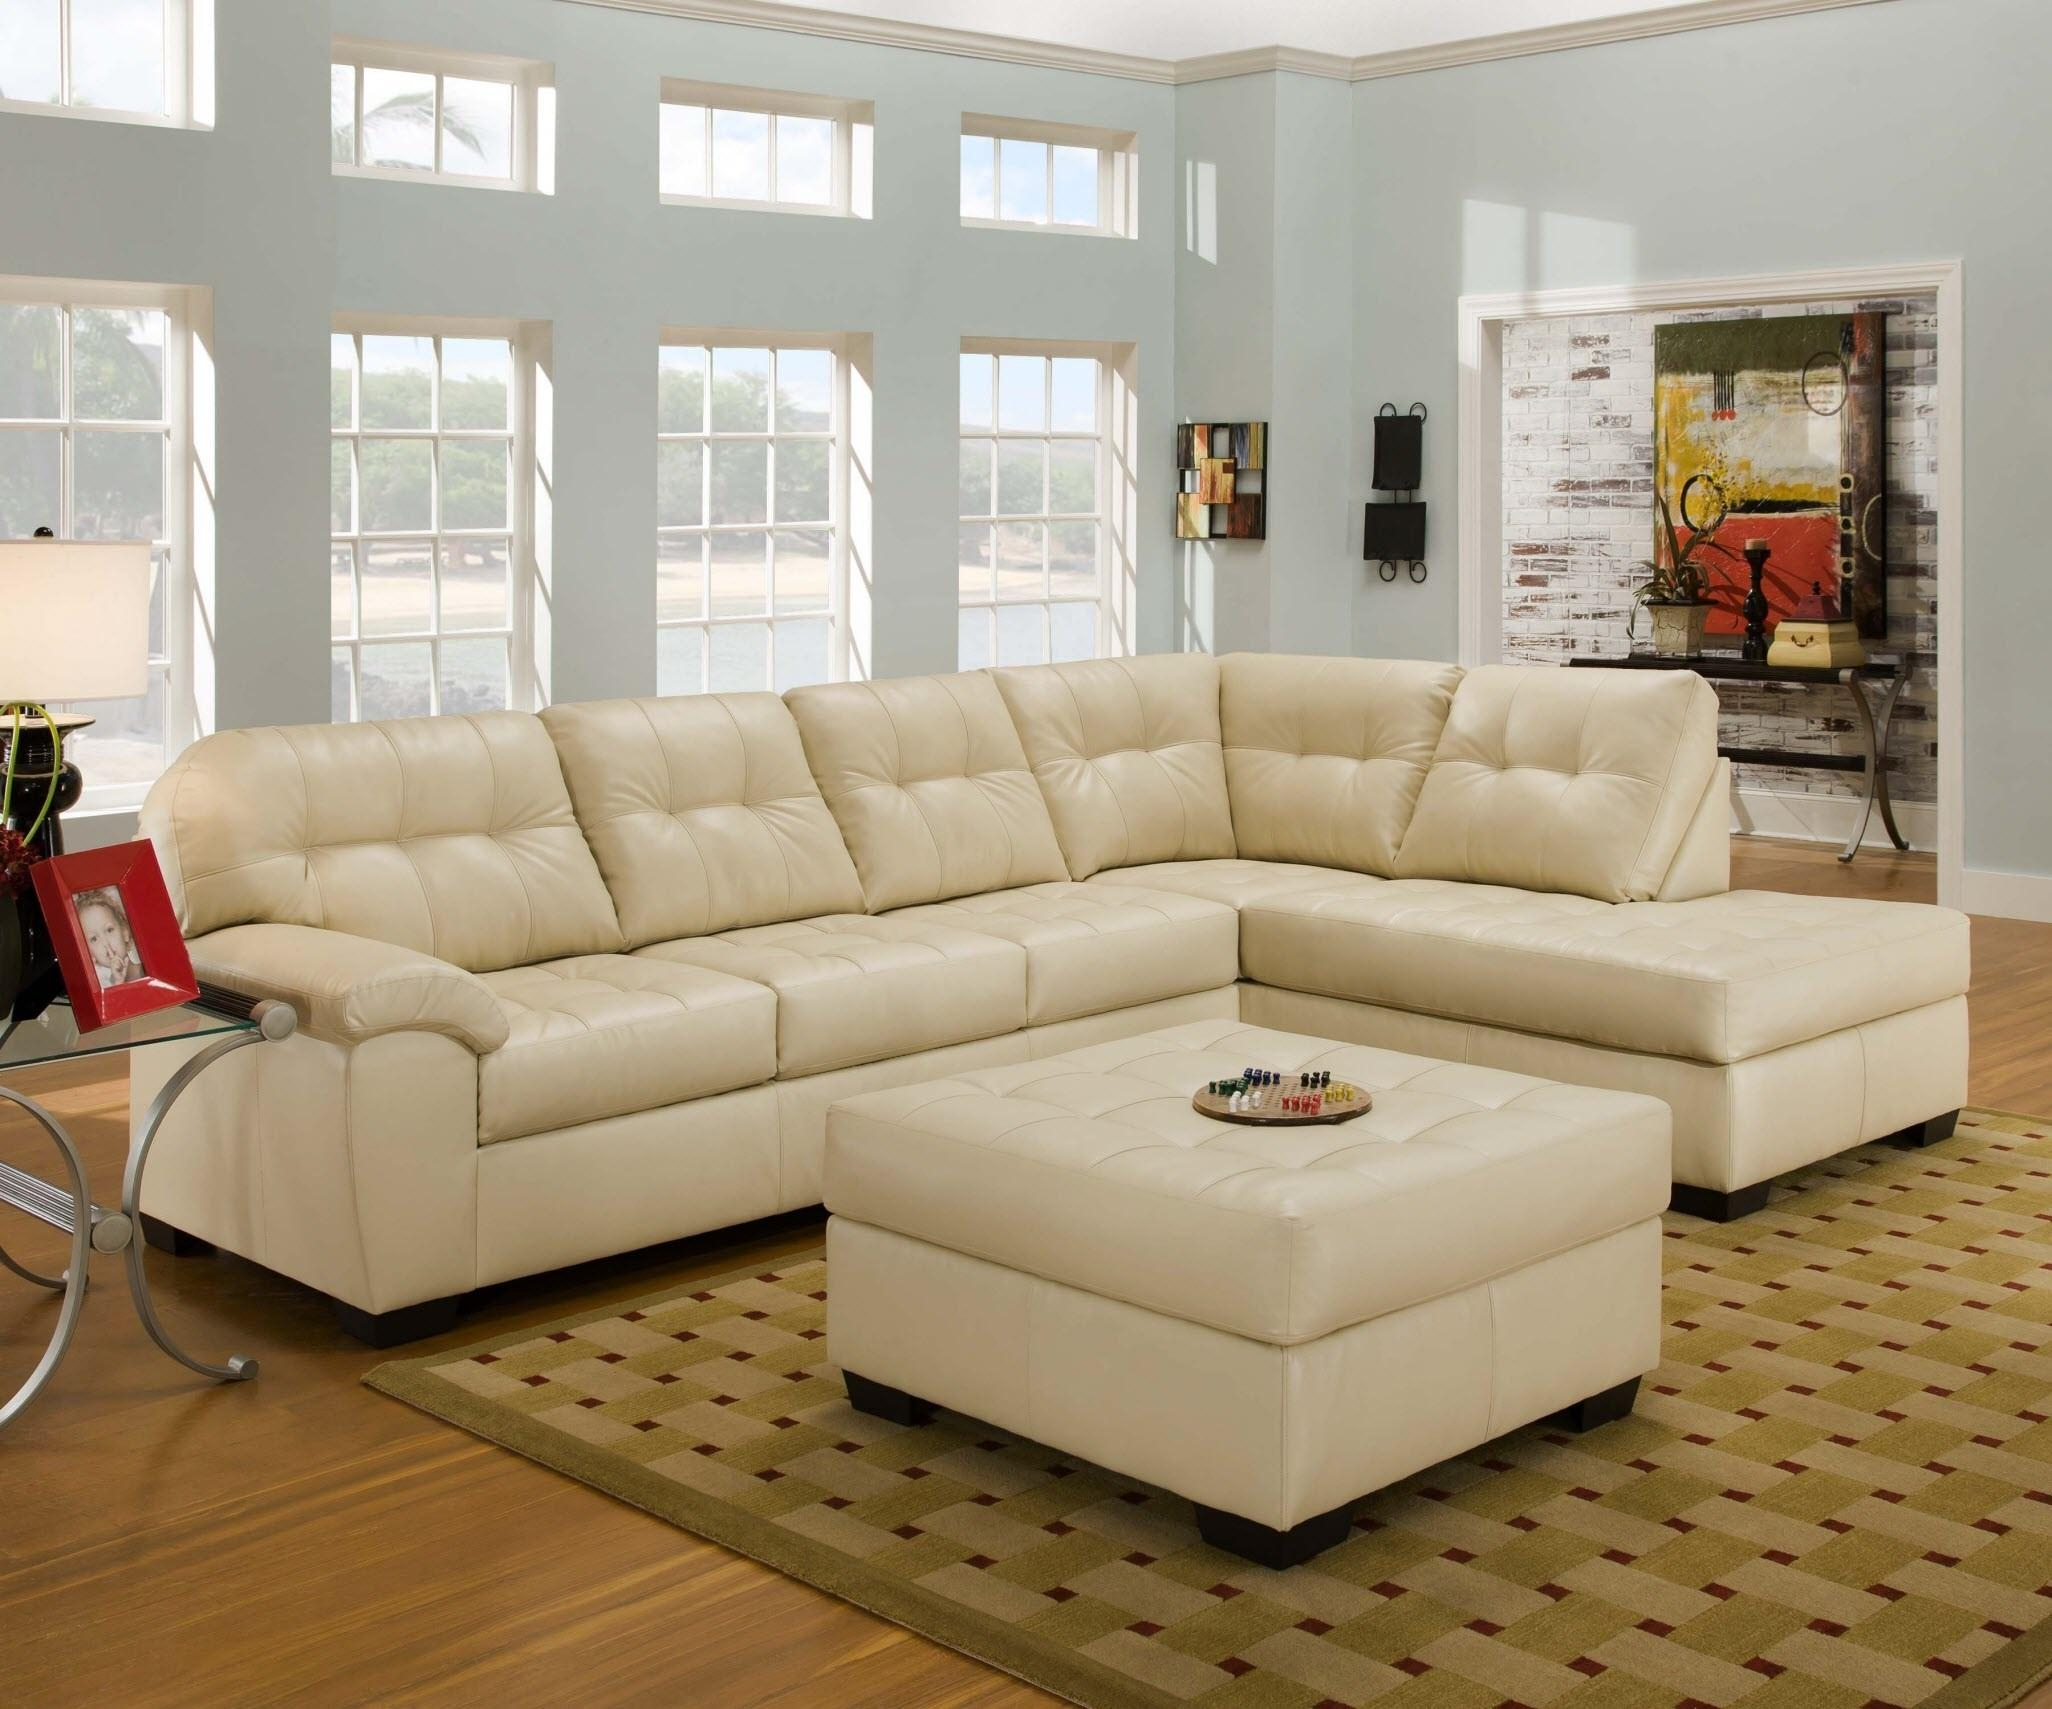 Sofa: Amazing Tufted Sectional With Chaise Velvet Tufted Sectional Inside Tufted Sectional Sofa With Chaise (Image 9 of 20)